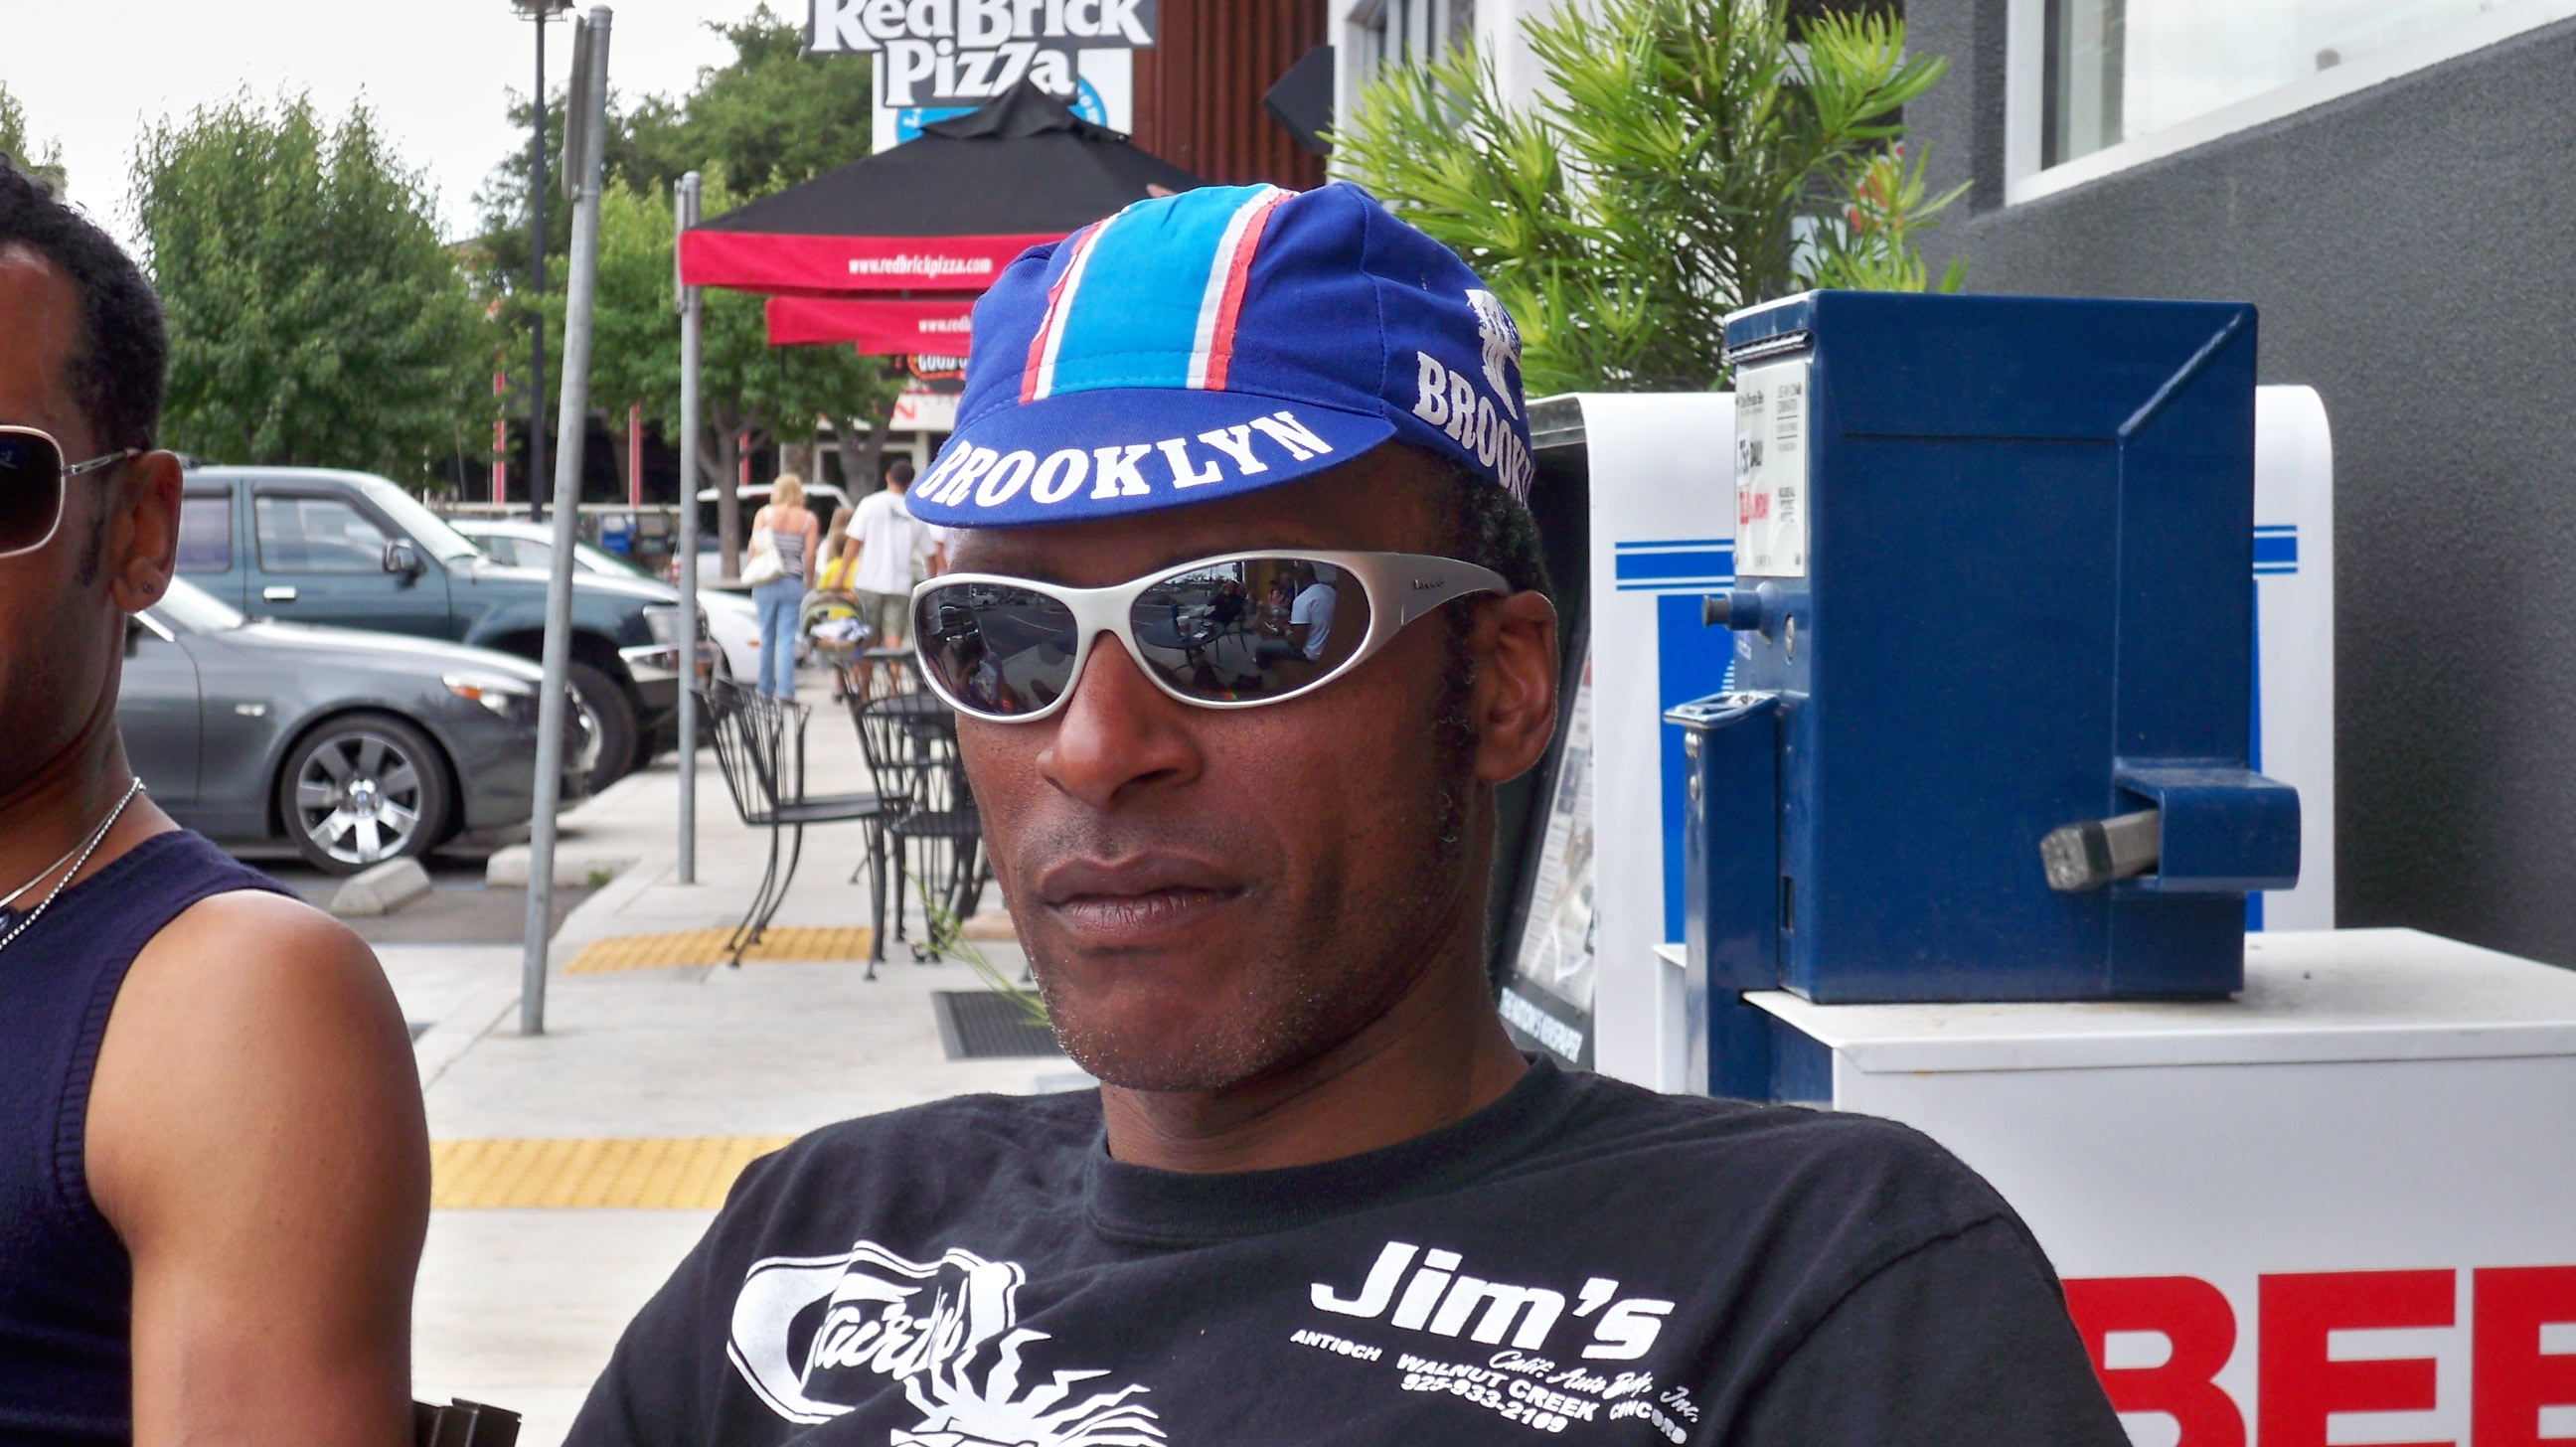 AIDS/Lifecycle Cyclist Resting at Pit Stop